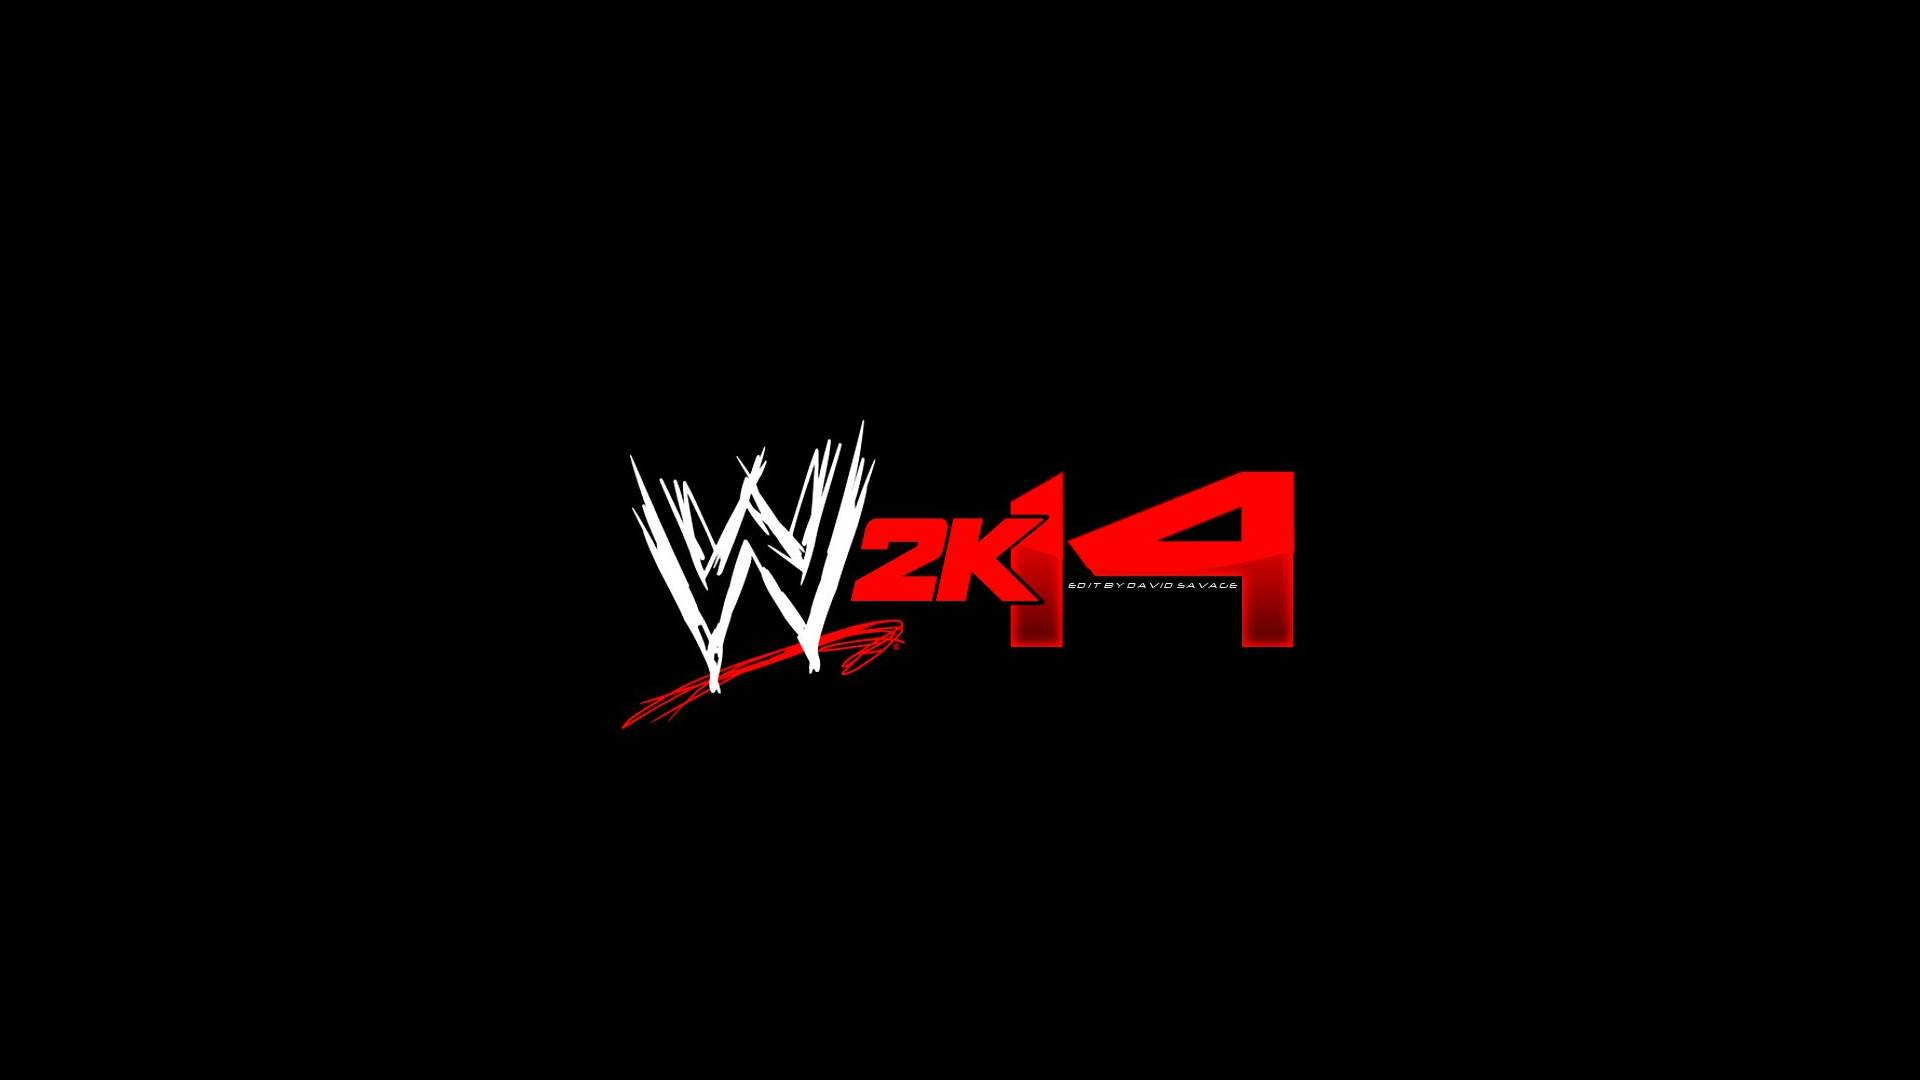 WWE 2K14 Black Logos 5417 Wallpaper